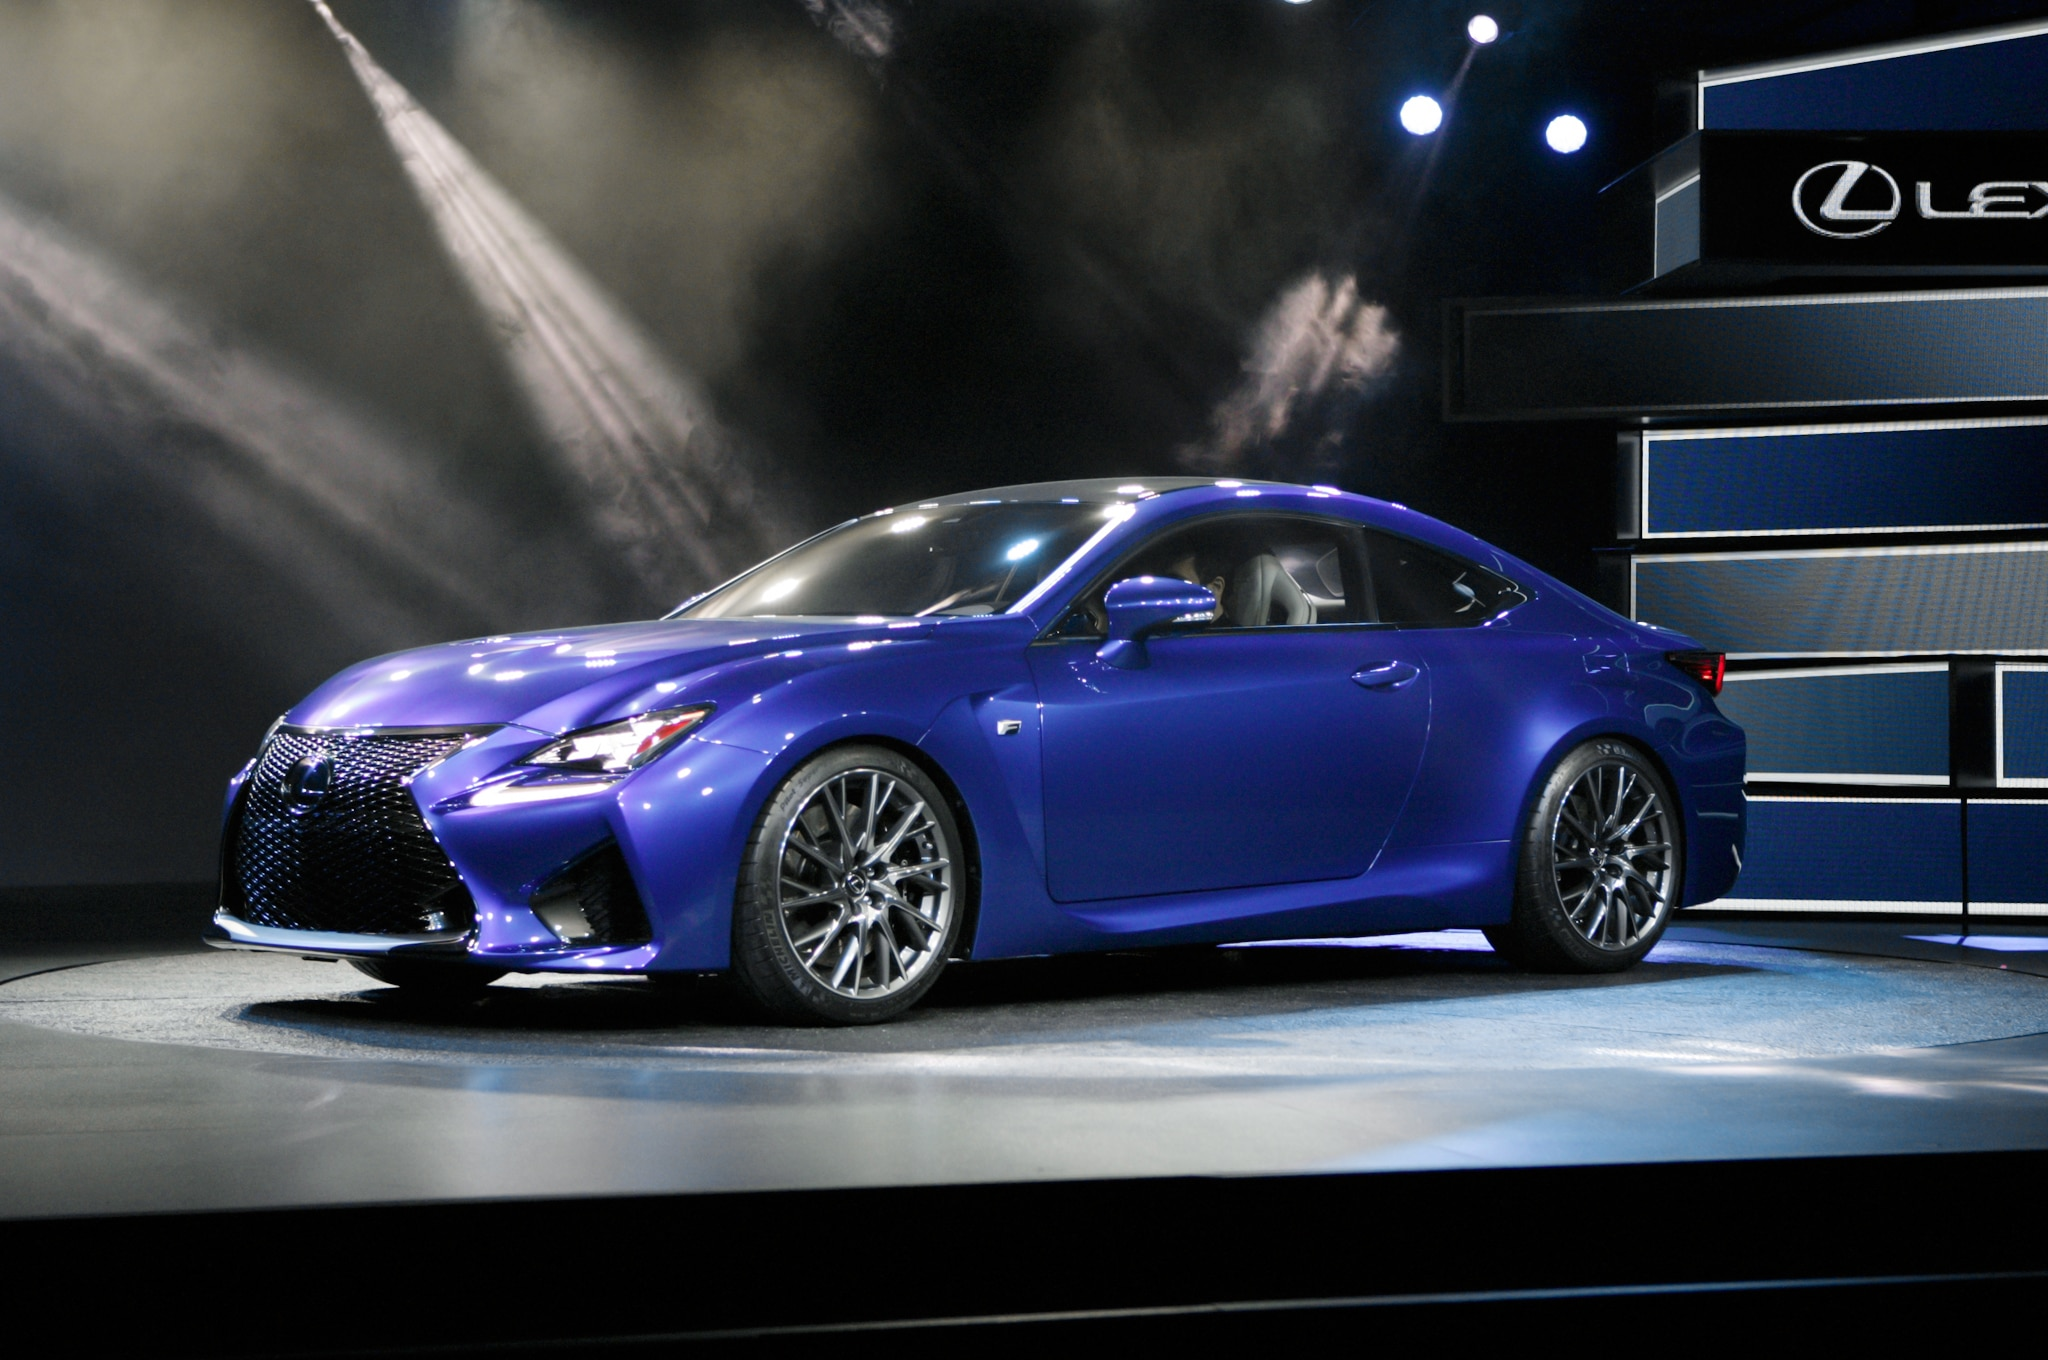 2015 Lexus RC F Front Three Quarters 031